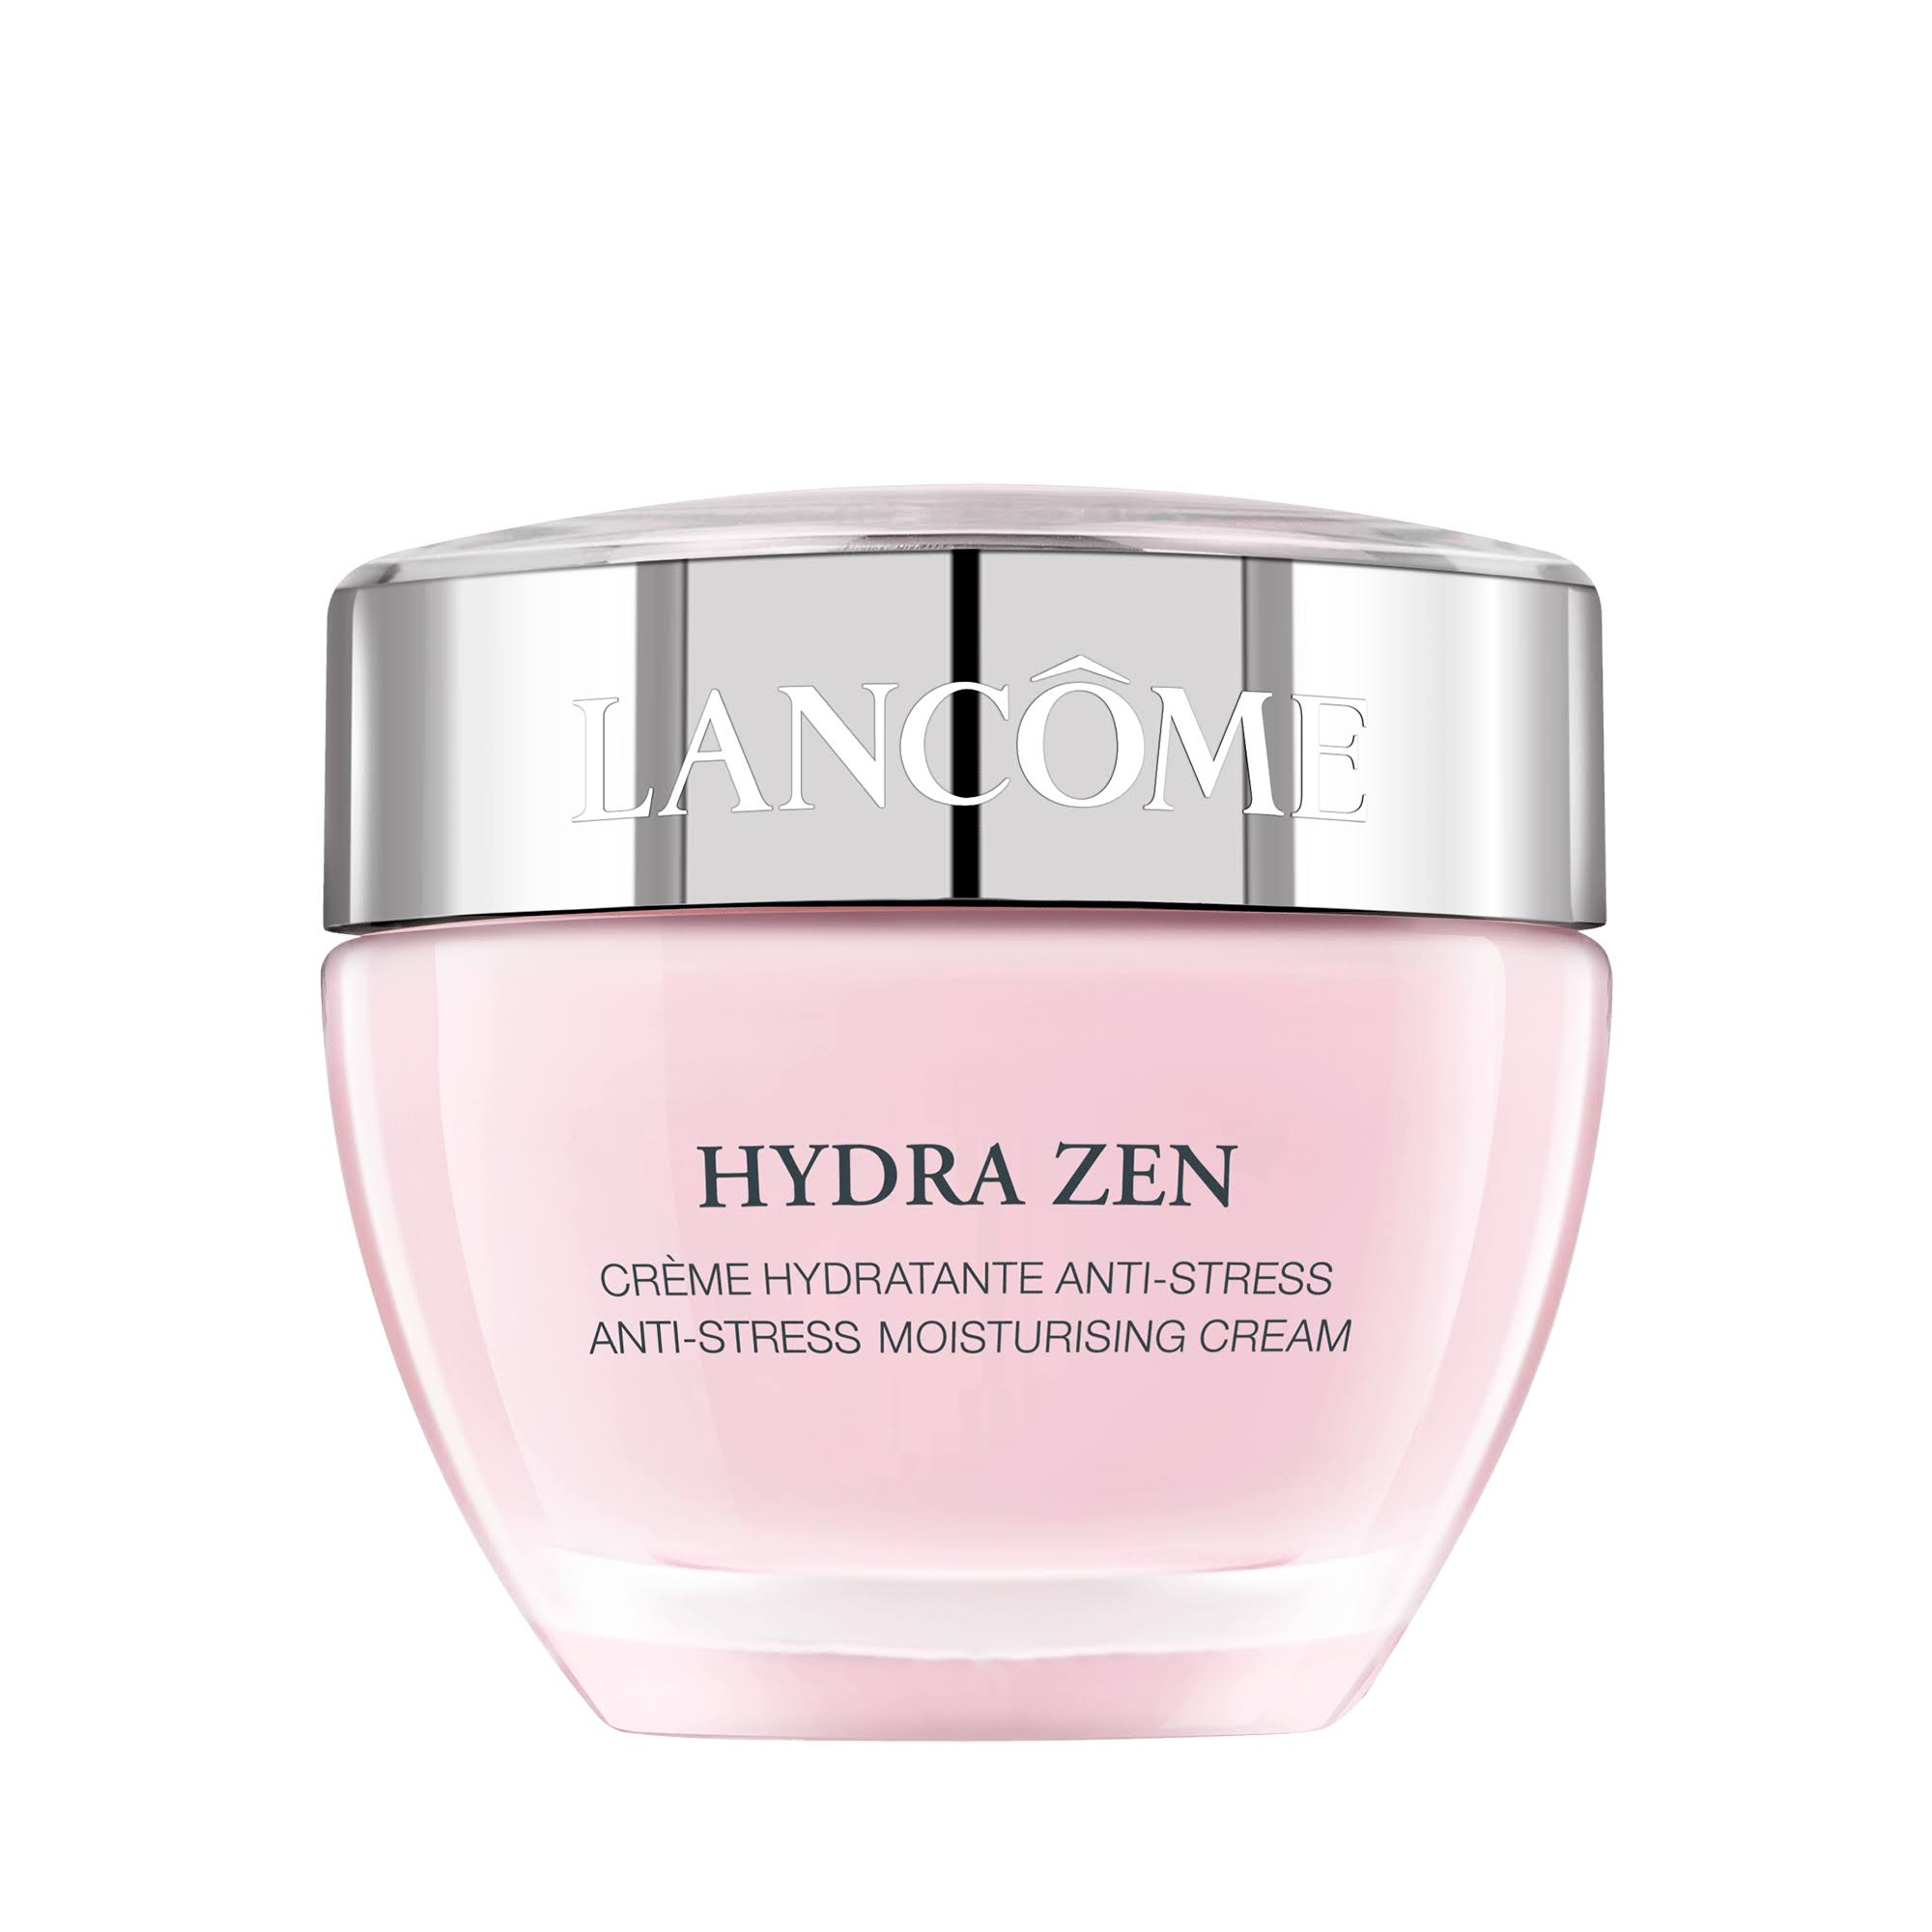 Lancome Hydra Zen Neurocalm Soothing Anti-Stress Moisturising Cream - 50ml